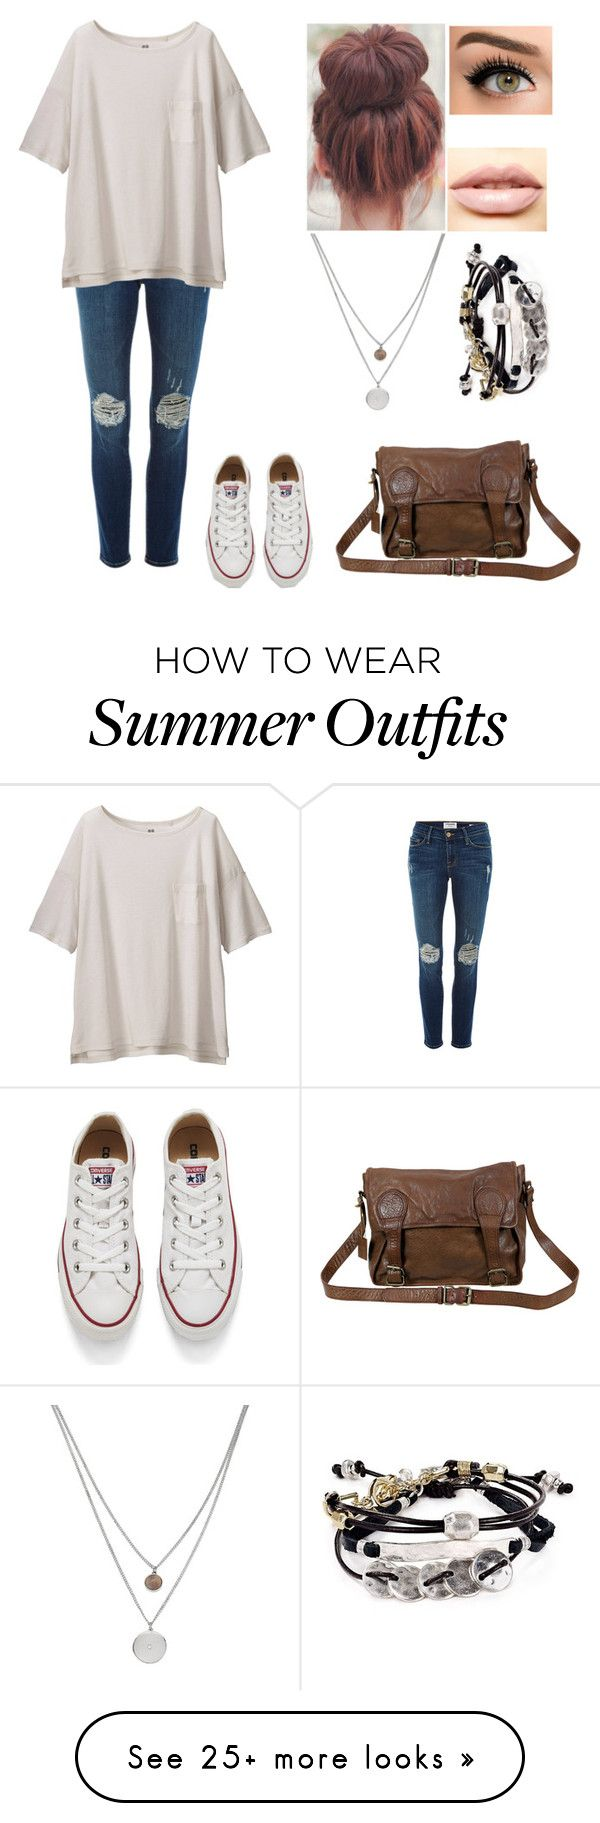 lazy day outfit. by kerryhere on Polyvore featuring Frame Denim, Uniqlo, Converse, LASplash, Kenneth Cole, Robert Lee Morris, VIPARO, womens clothing, womens fashion and women •Pinterest: Angelica Infante Angelica Infante•